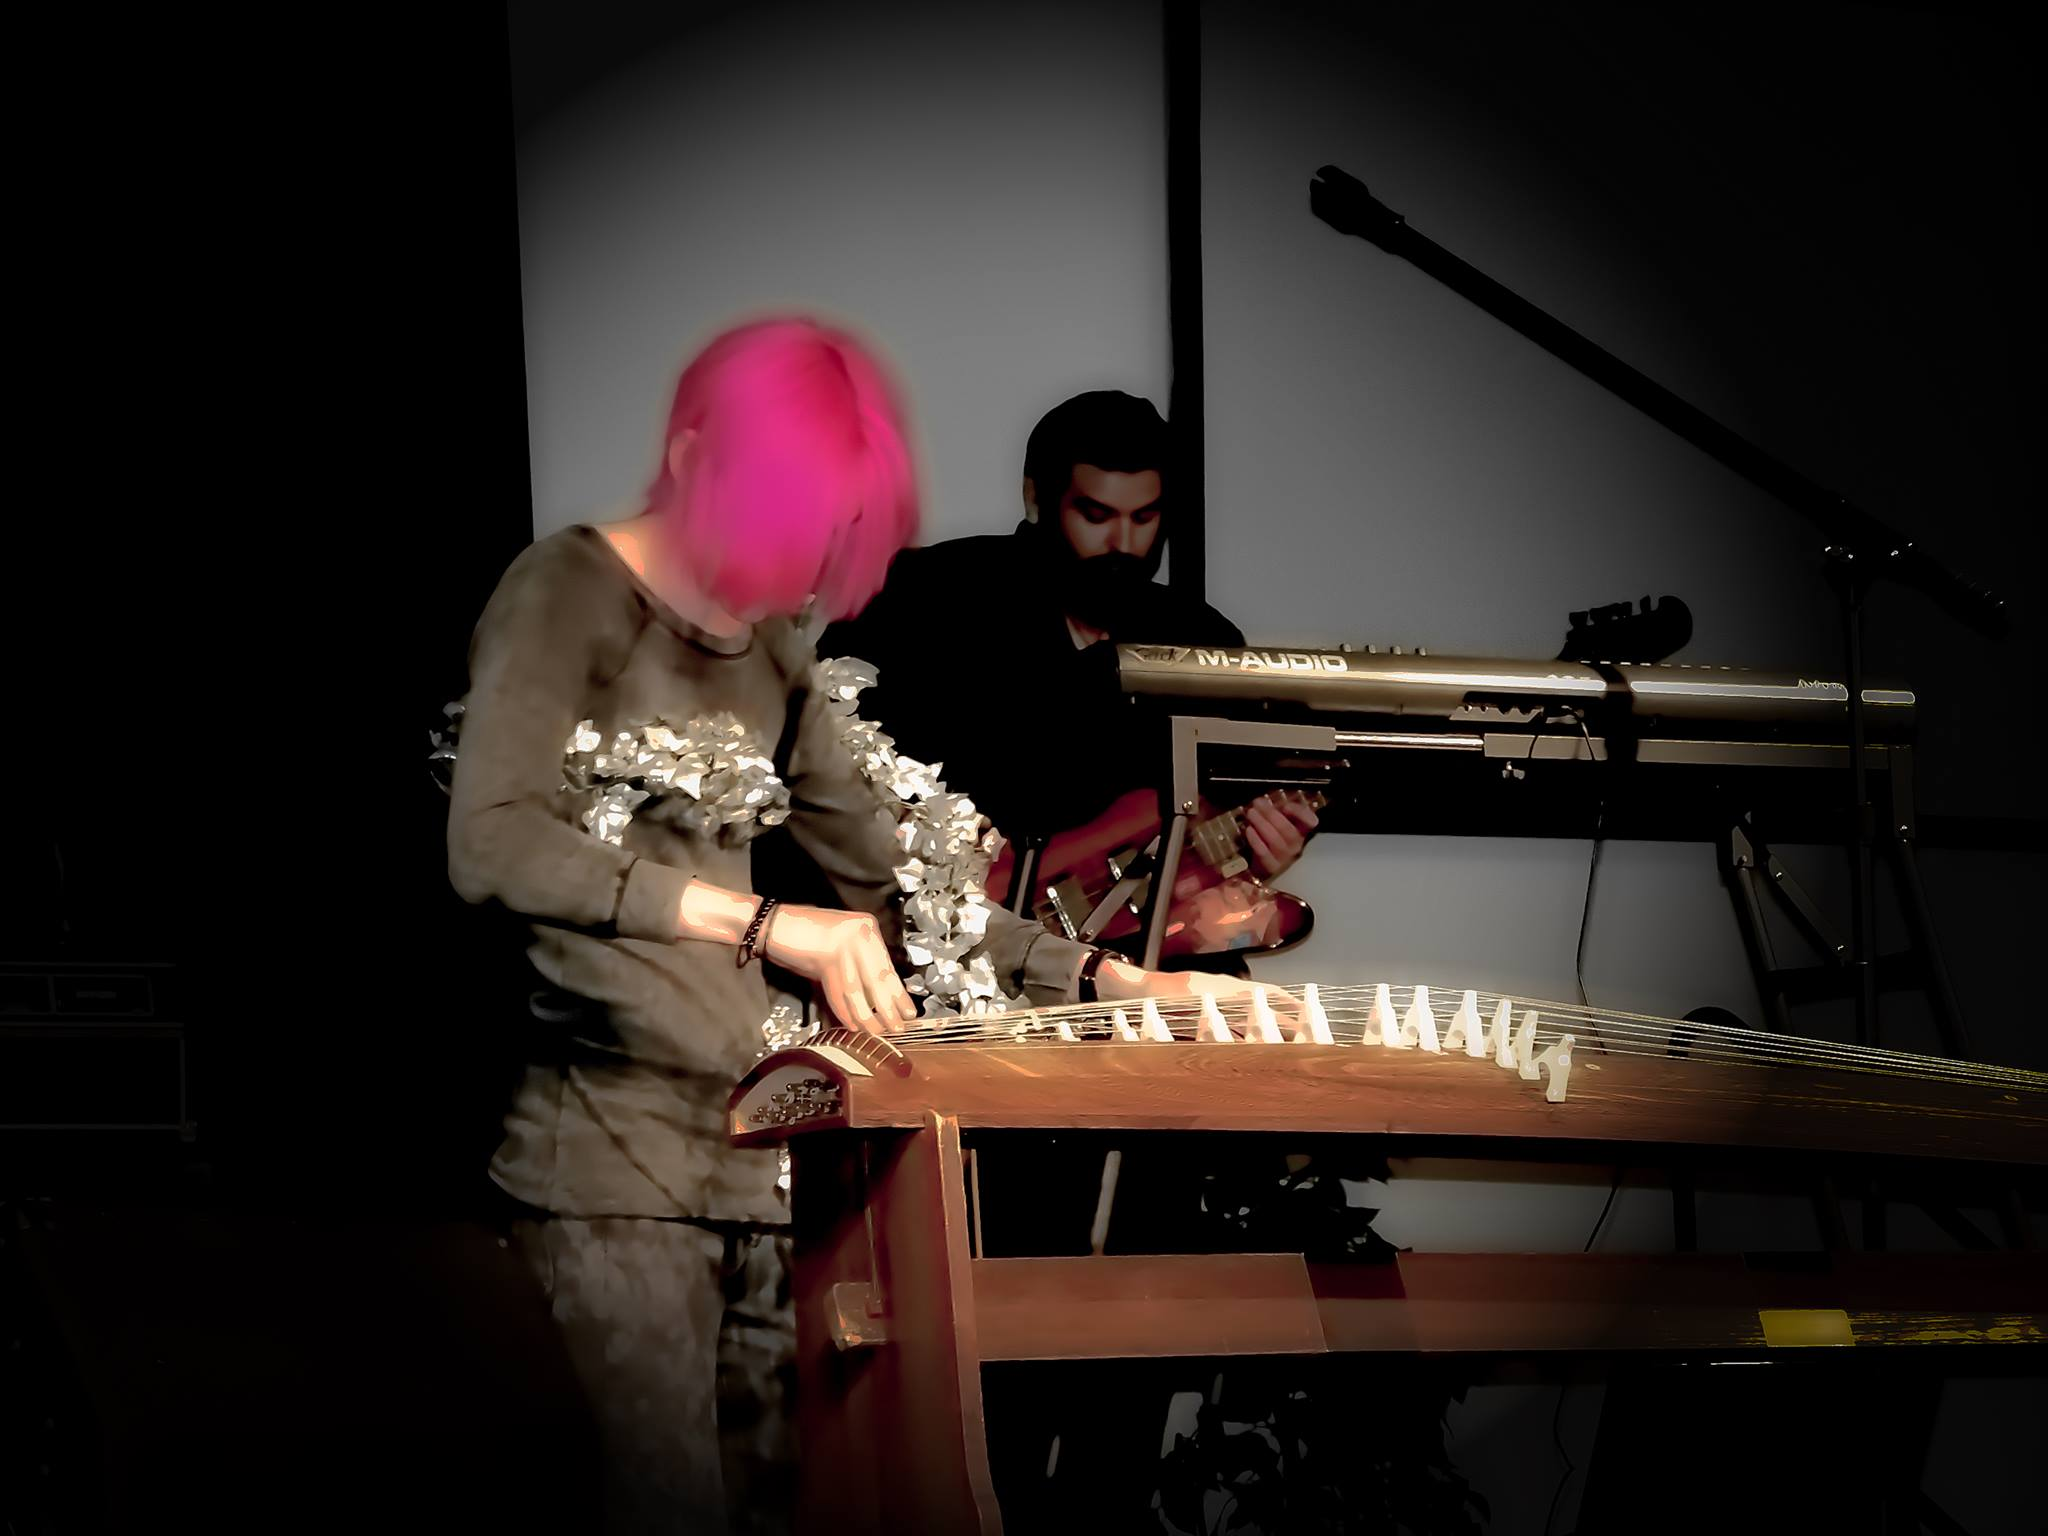 Robert playing the koto -- photography and editing by Allyson Escobar